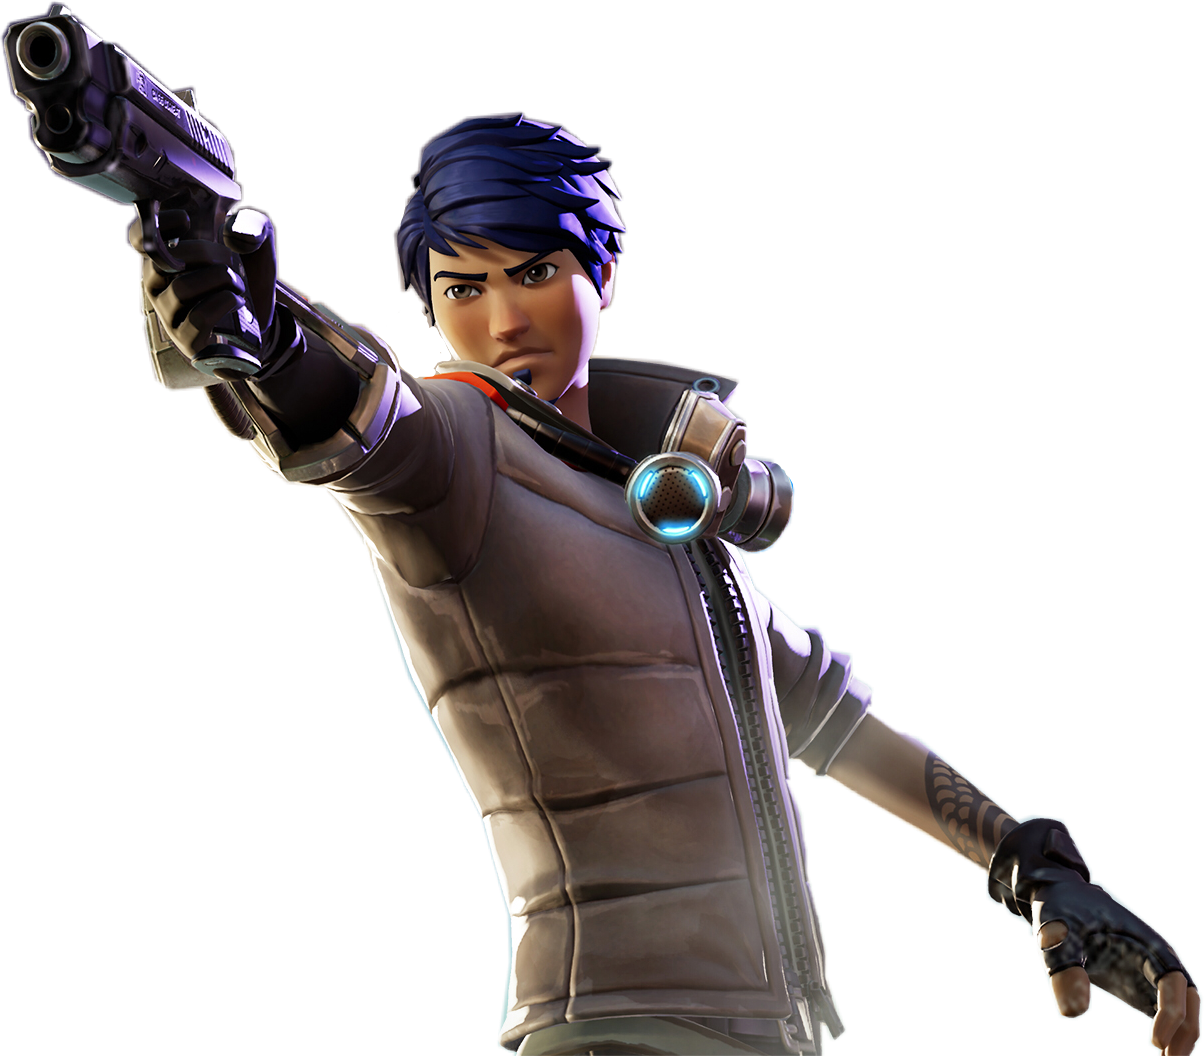 Fortnite characters png. Battle royale playerunknown s